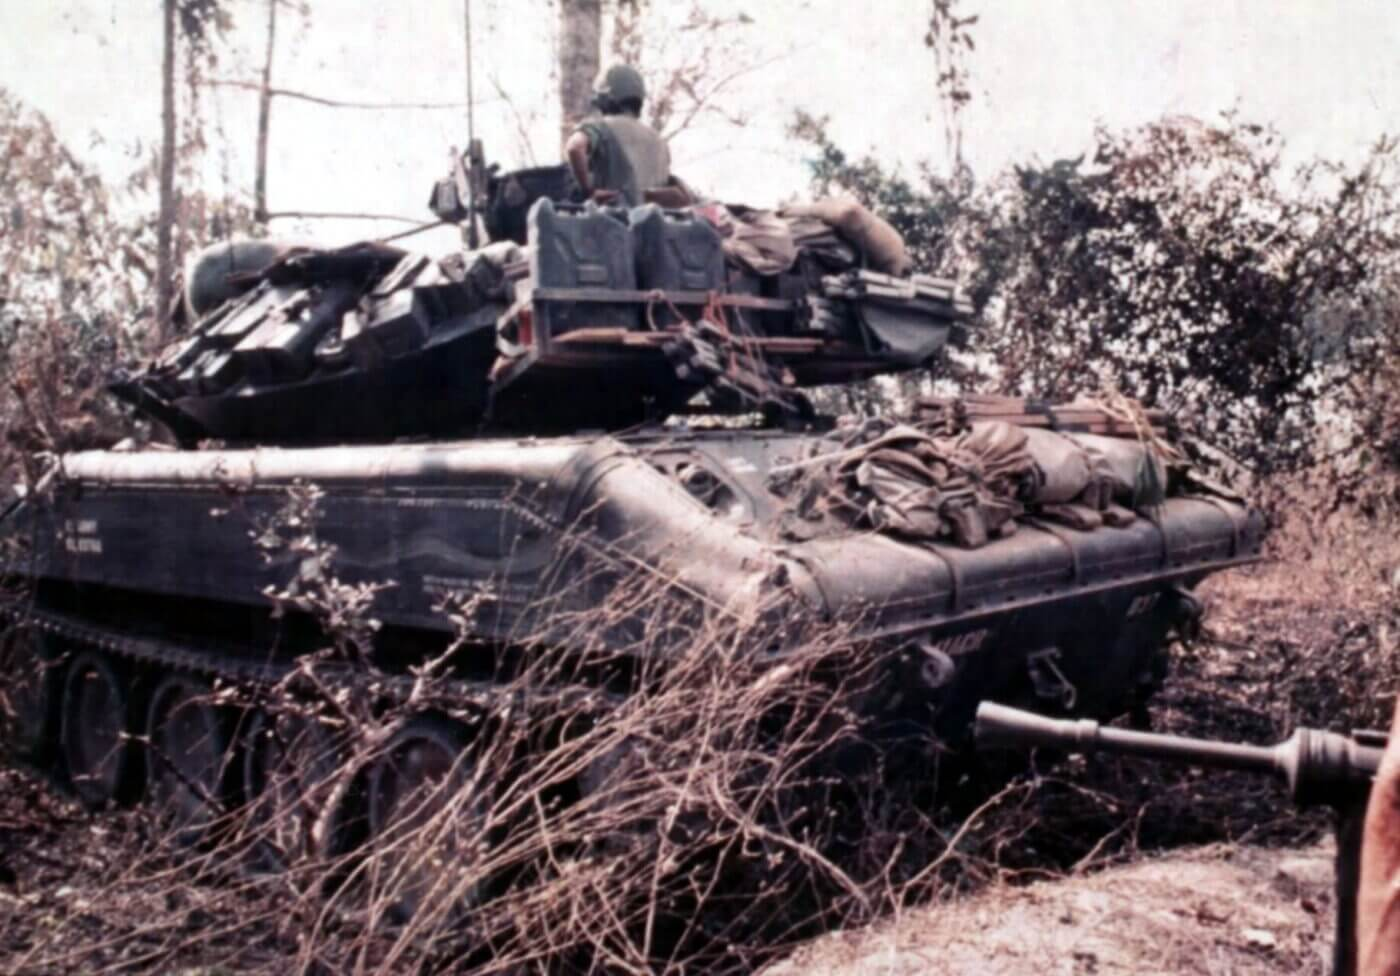 Sheridan tank of the 11th Armored Division with an M3 Grease Gun